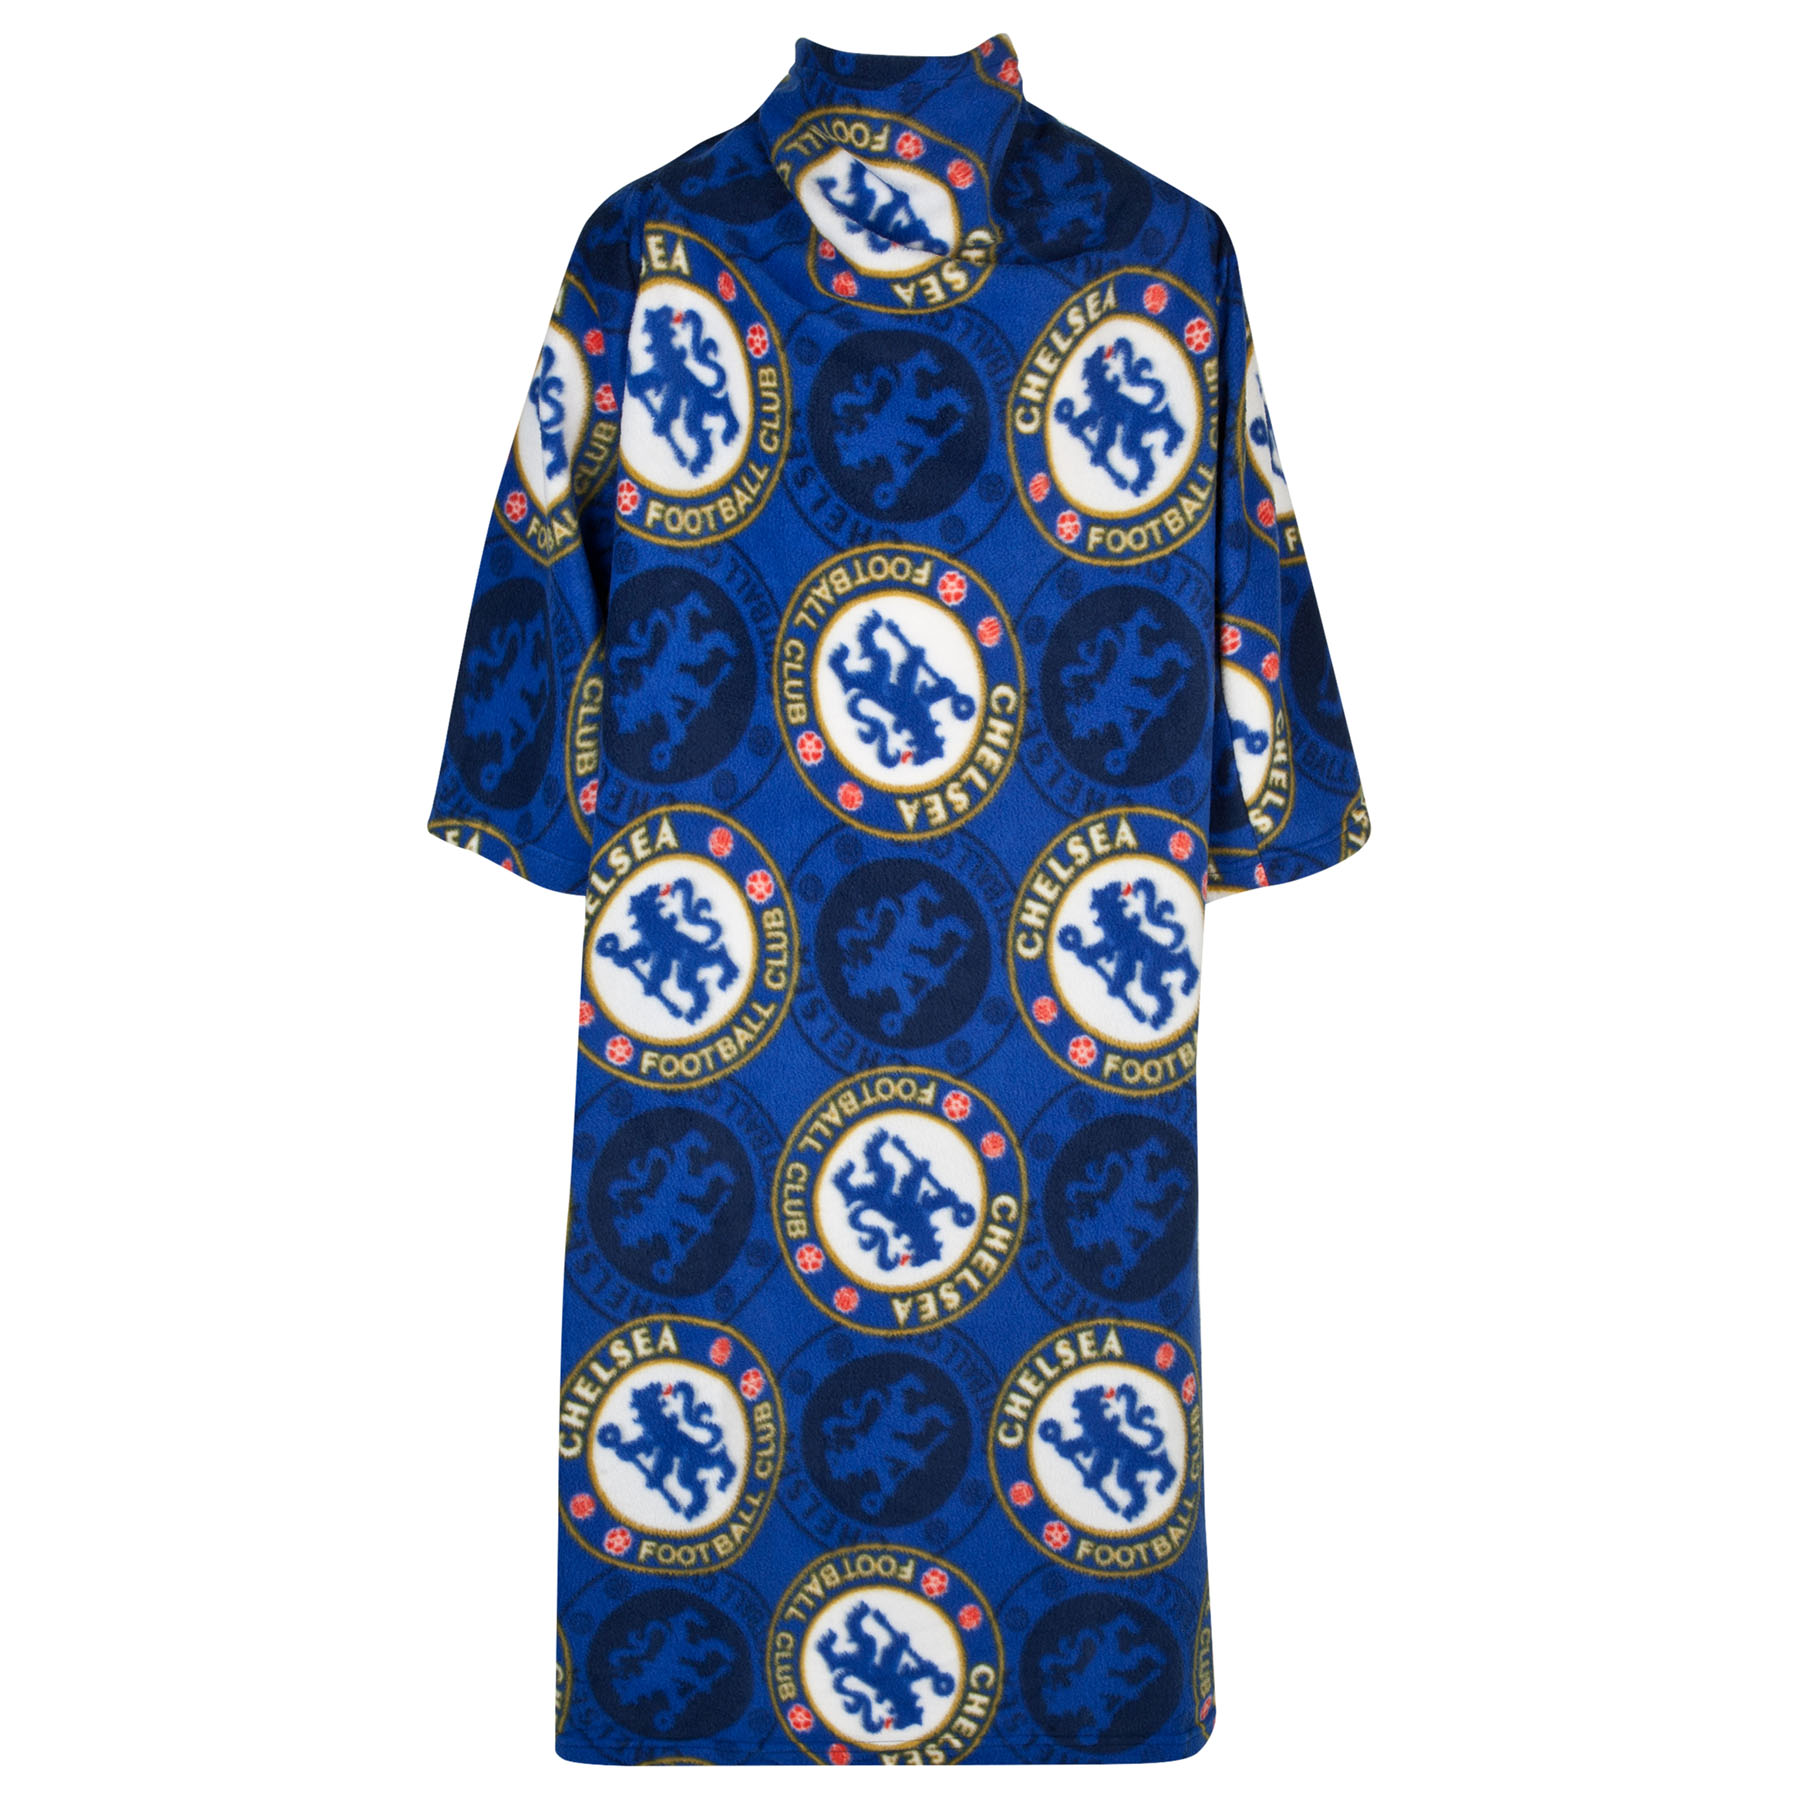 Chelsea Crest Snuggle Fleece